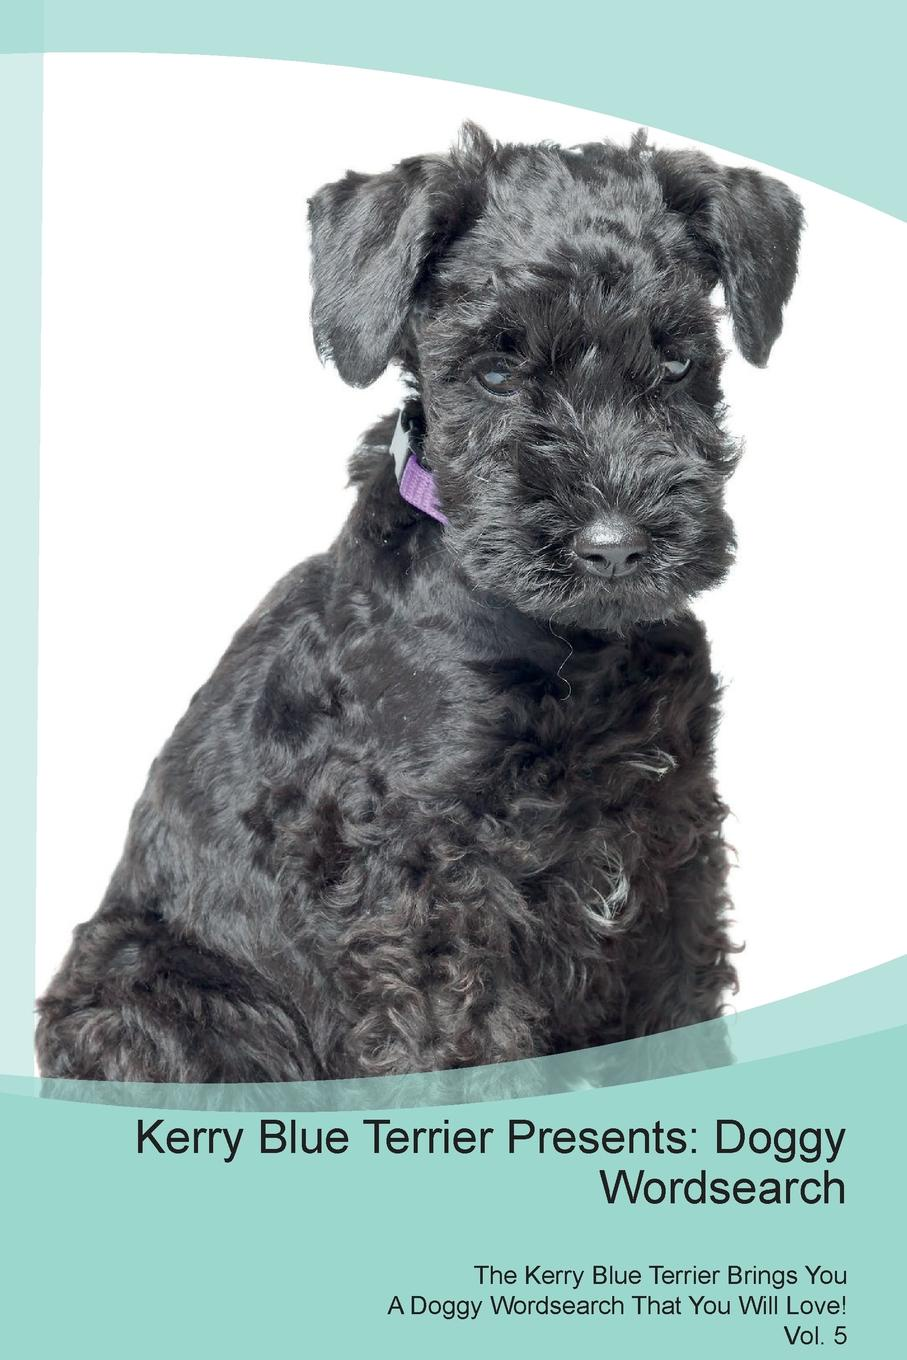 Doggy Puzzles Kerry Blue Terrier Presents. Wordsearch The Brings You A That Will Love! Vol. 5